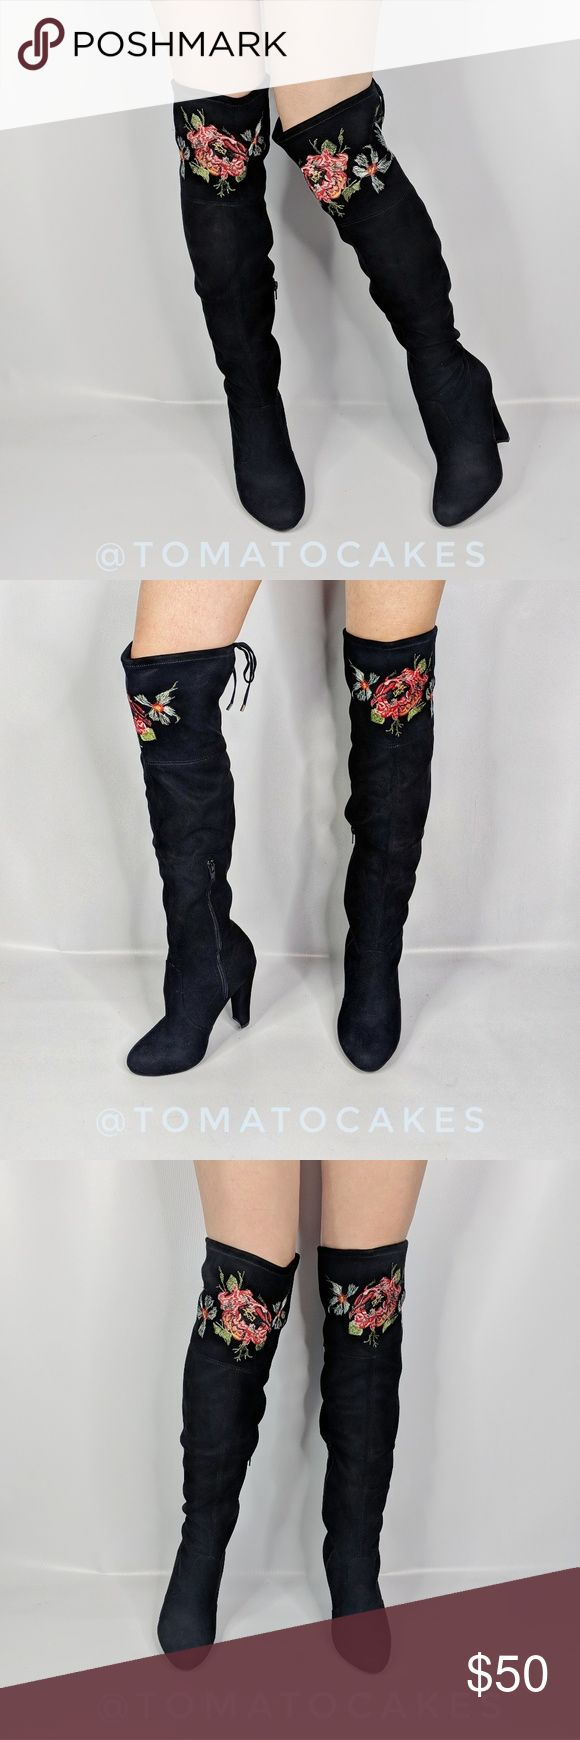 zigisoho Bryna embroidered over the knee boot NEW zigisoho Bryna floral embroidered over the knee black boots. Inside zip closure. Fabric upper. Manmade sole. Zigi Soho Shoes Over the Knee Boots